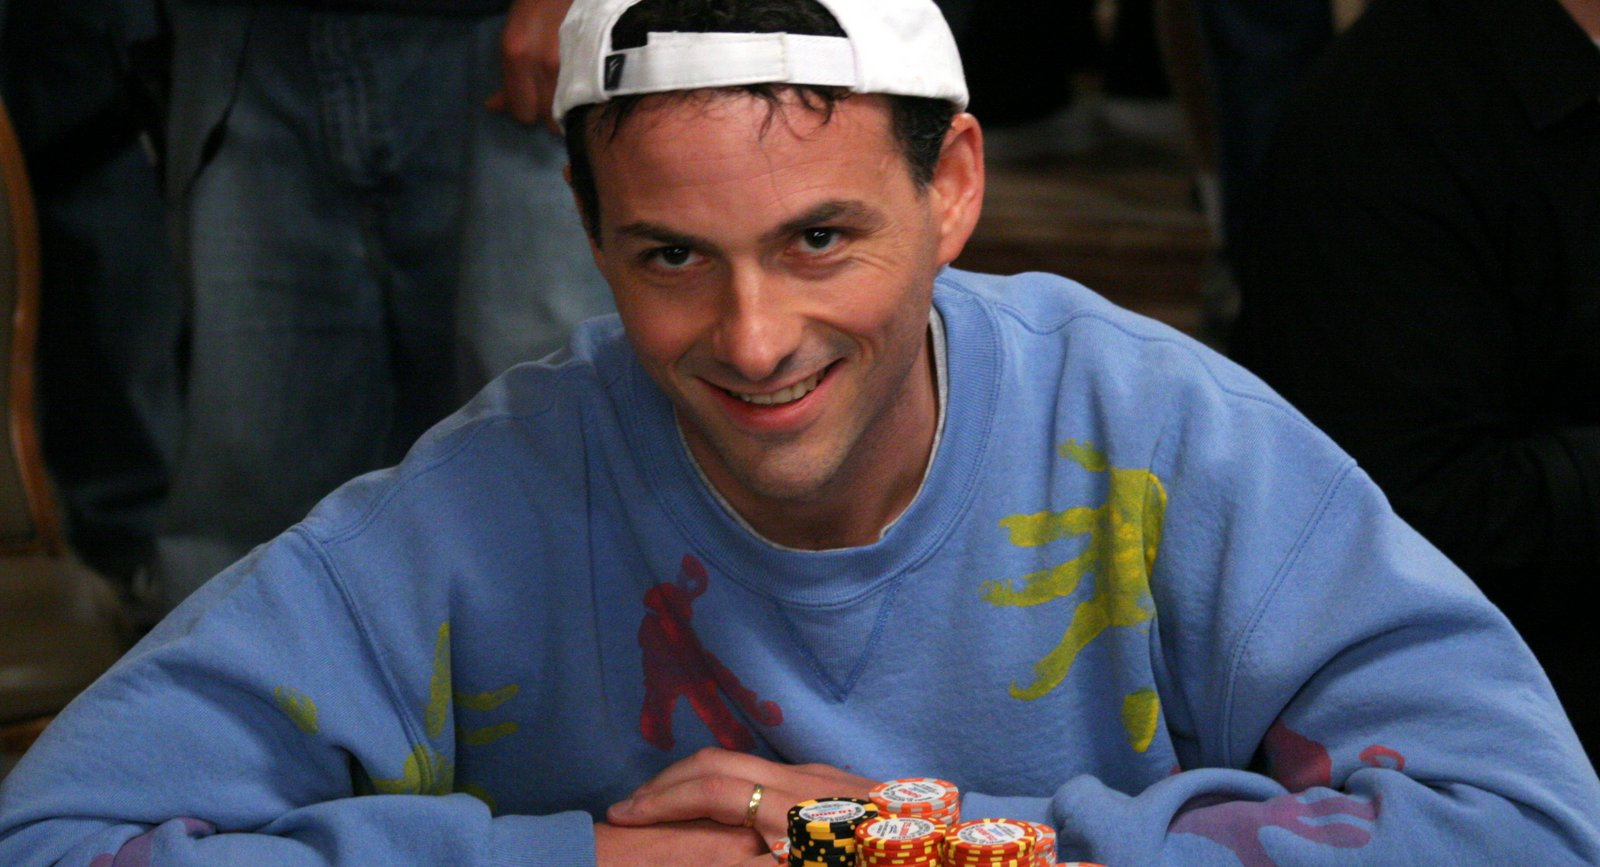 David Einhorn   Poker Player David Einhorn